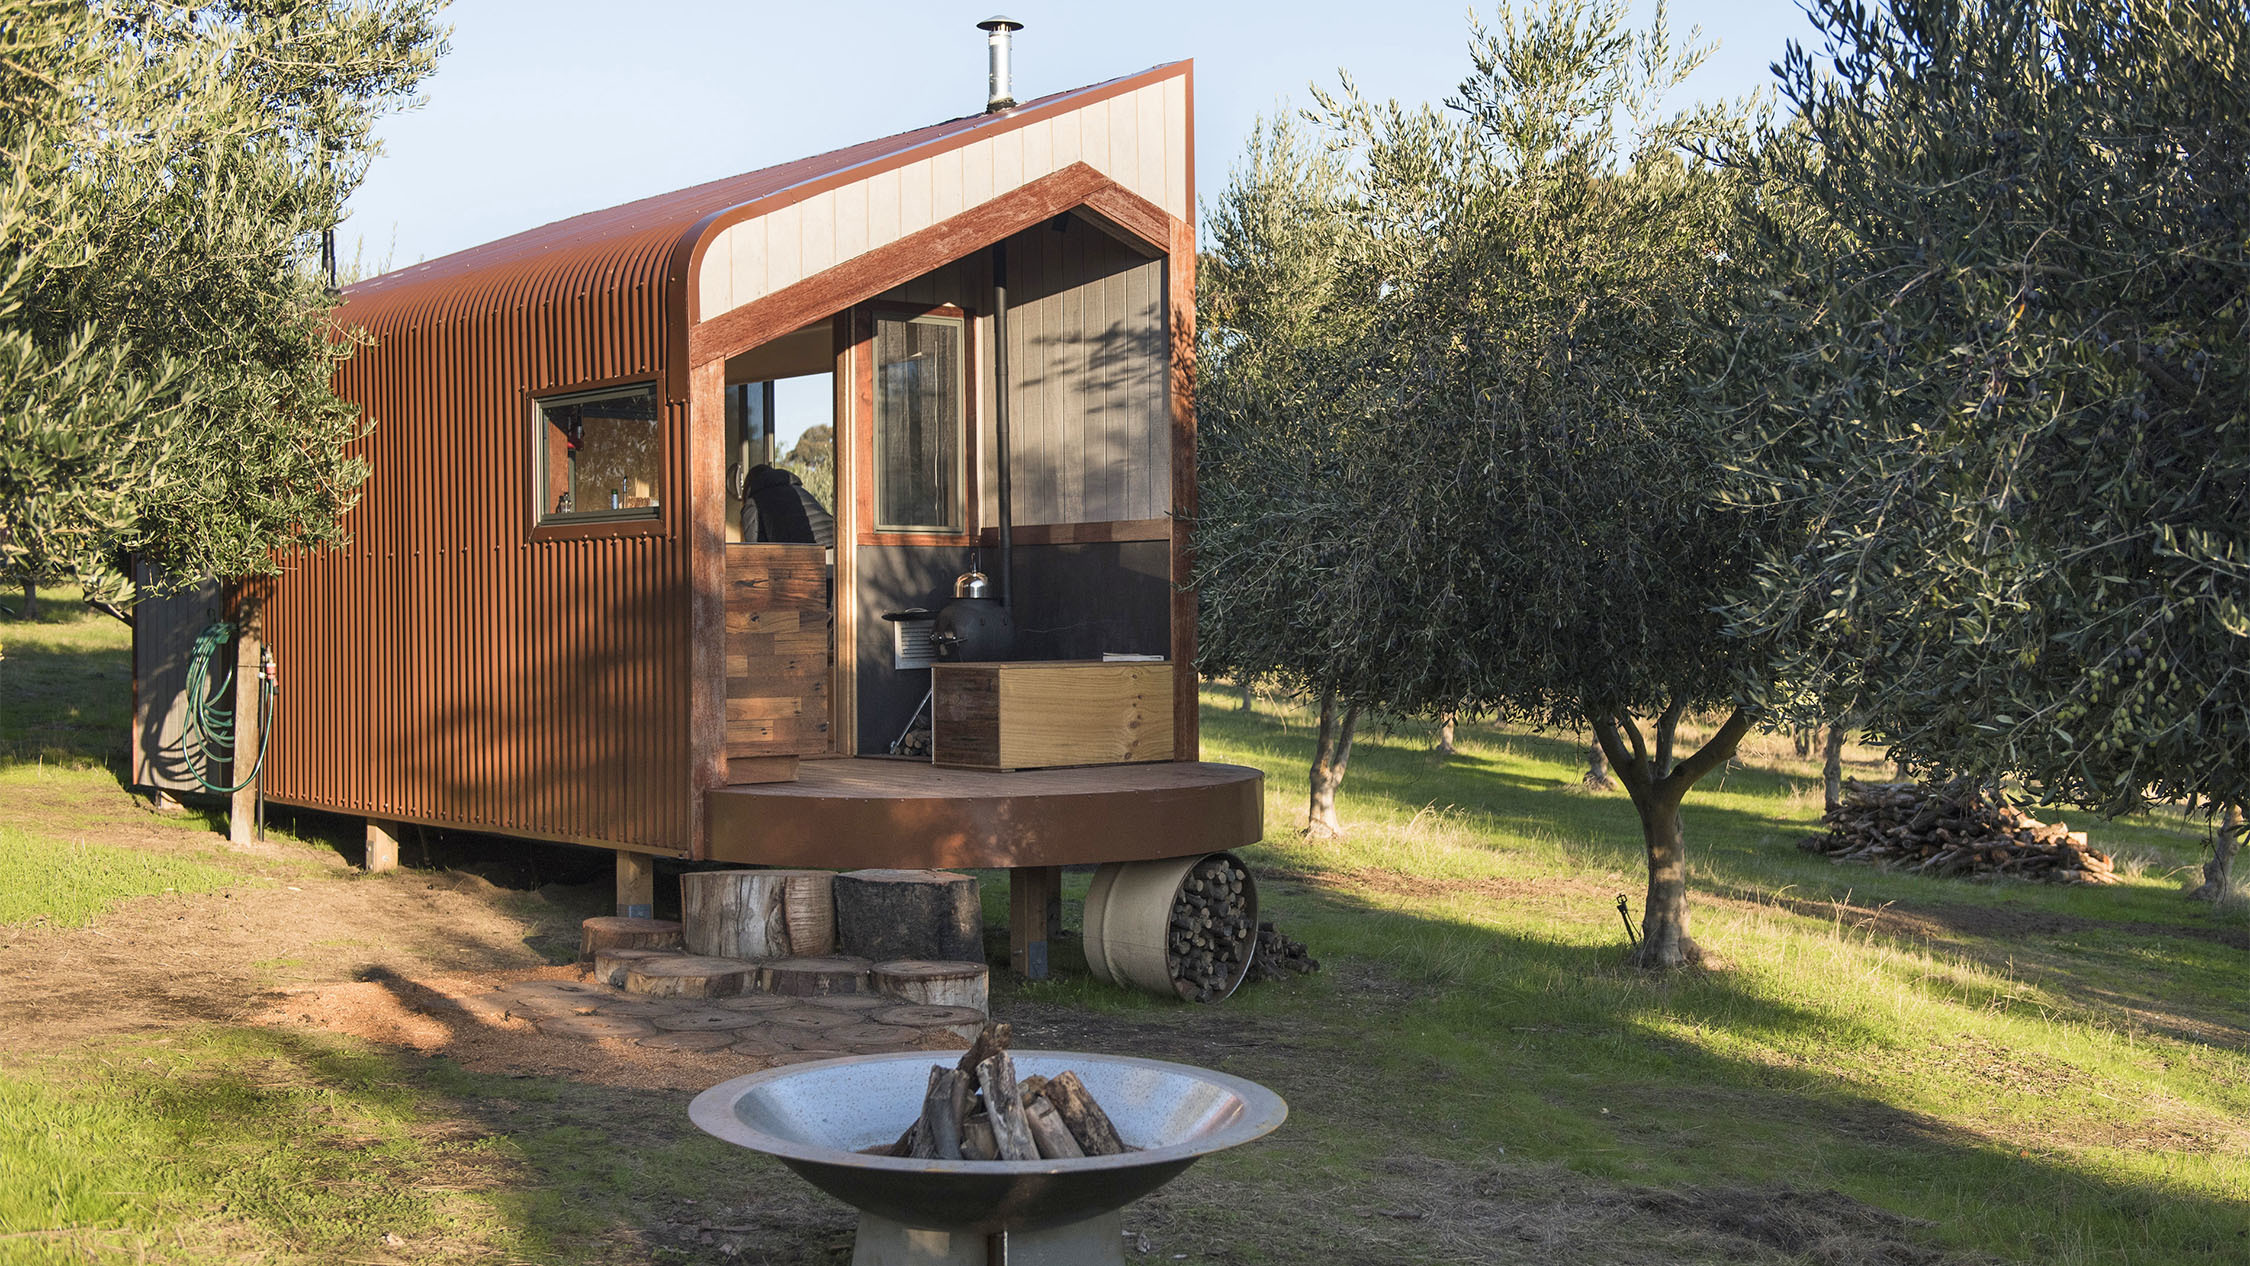 Shacky tiny house in Melbourne close up